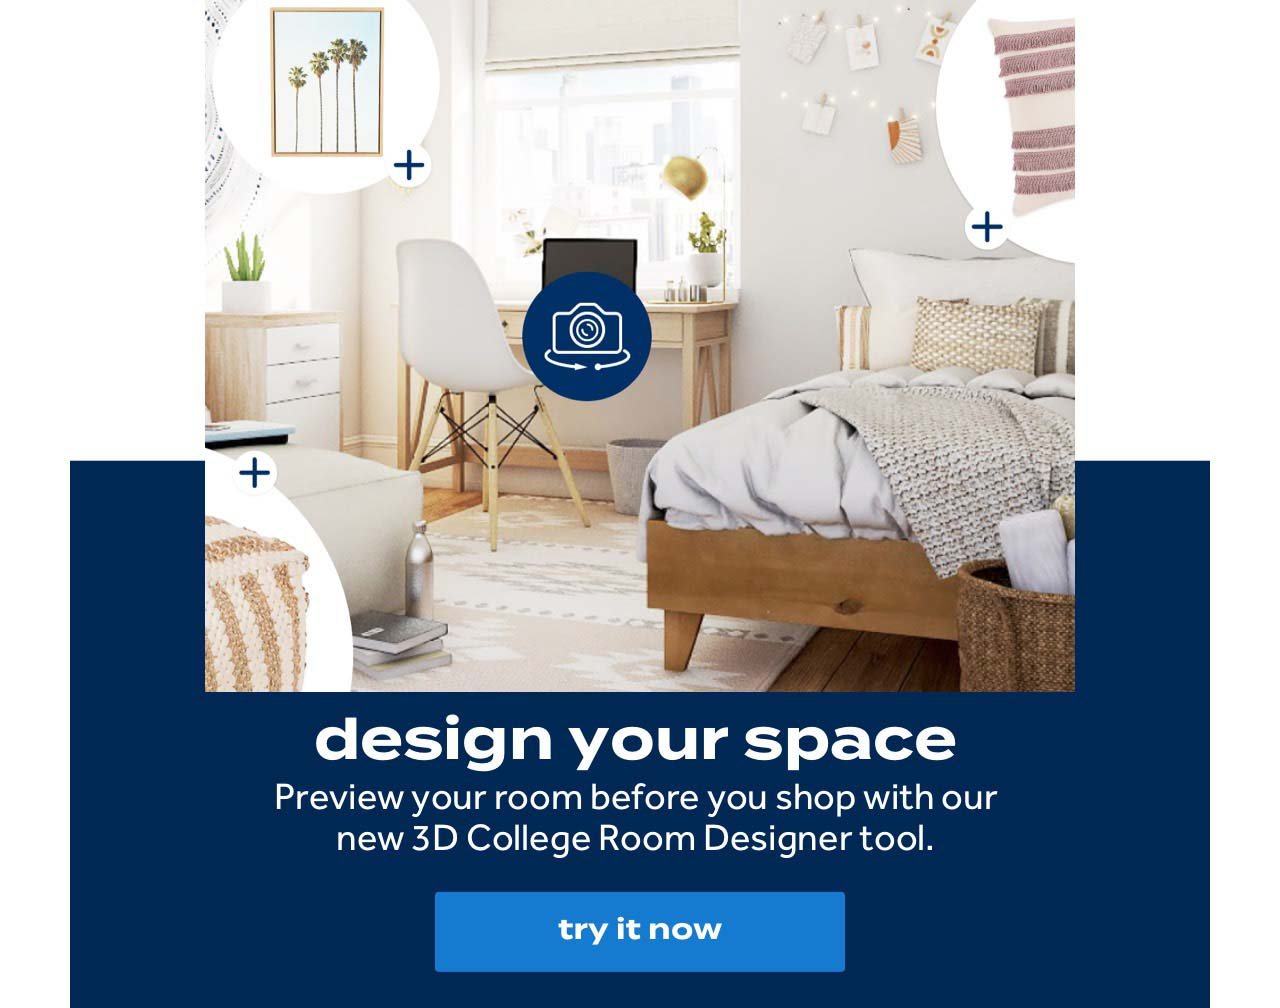 design your space Preview your room before you shop with our new 3D College Room Designer tool. try it now